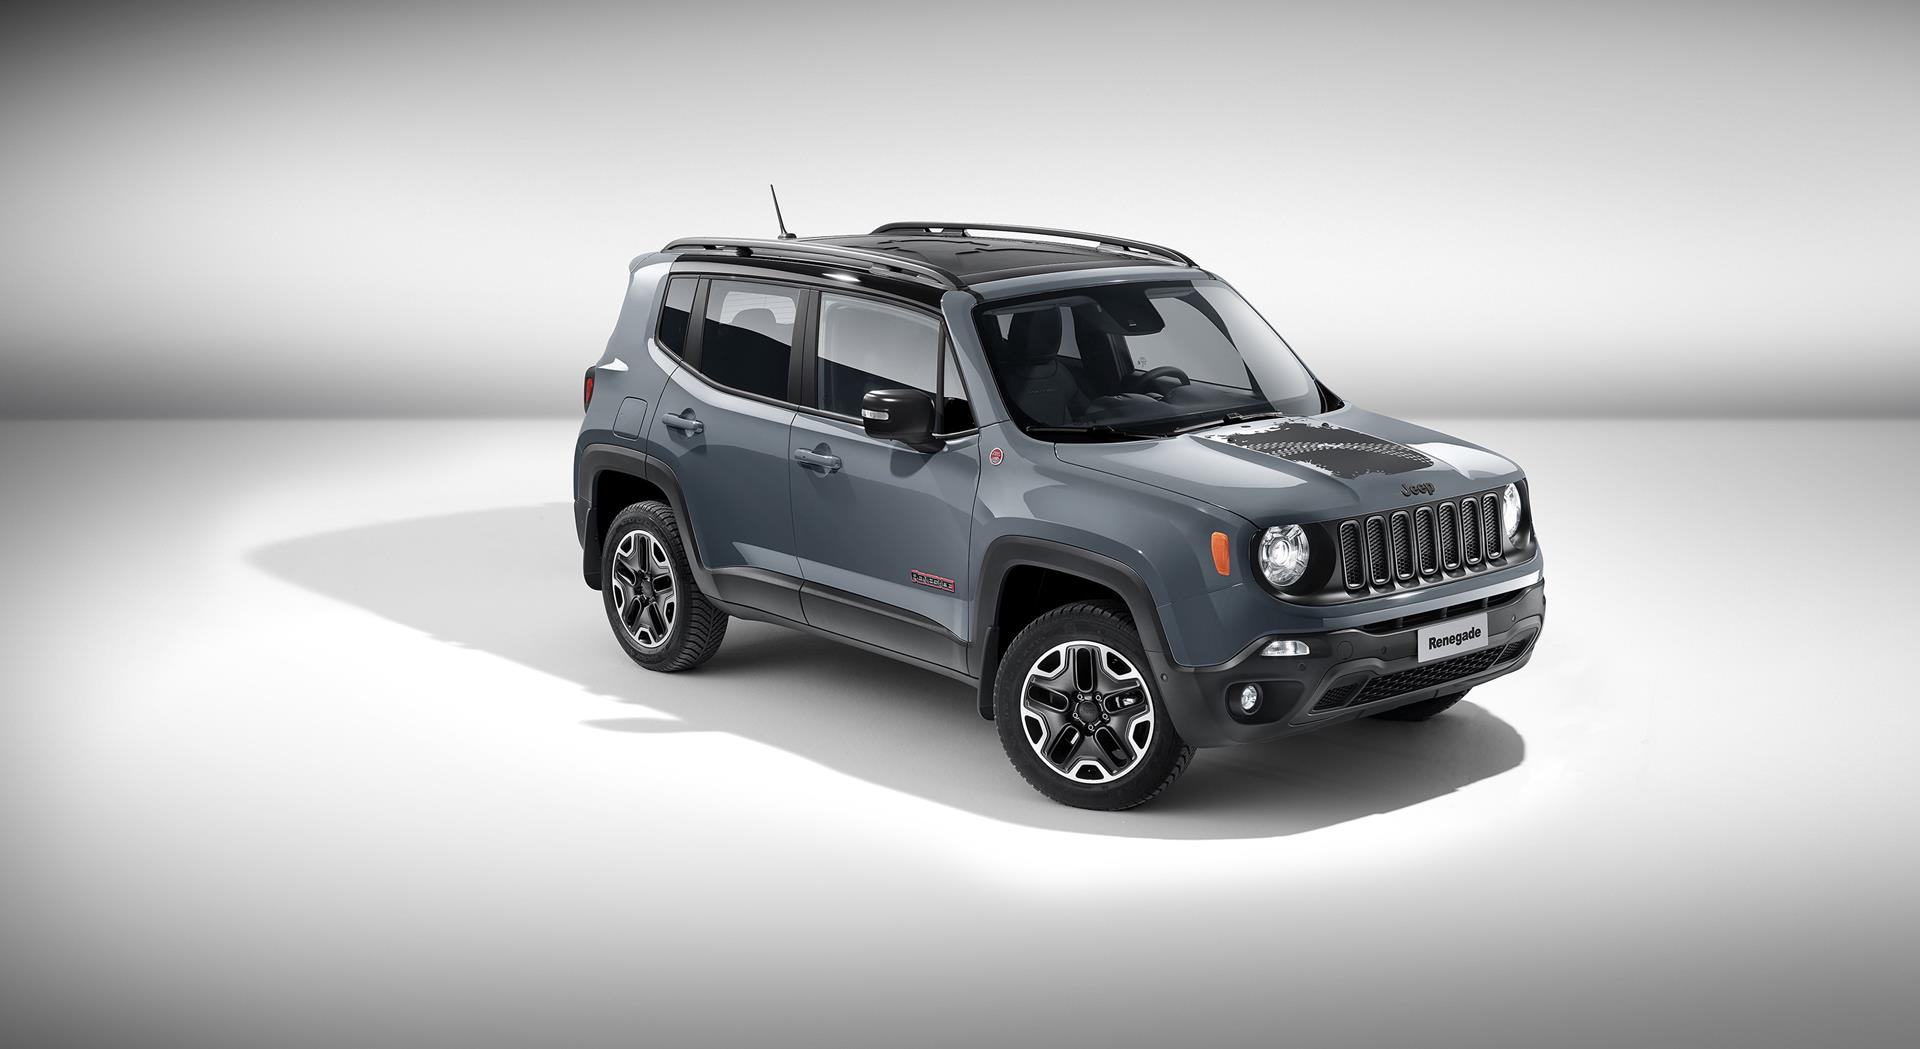 2015 jeep renegade trailhawk technical specifications and data engine dimensions and. Black Bedroom Furniture Sets. Home Design Ideas